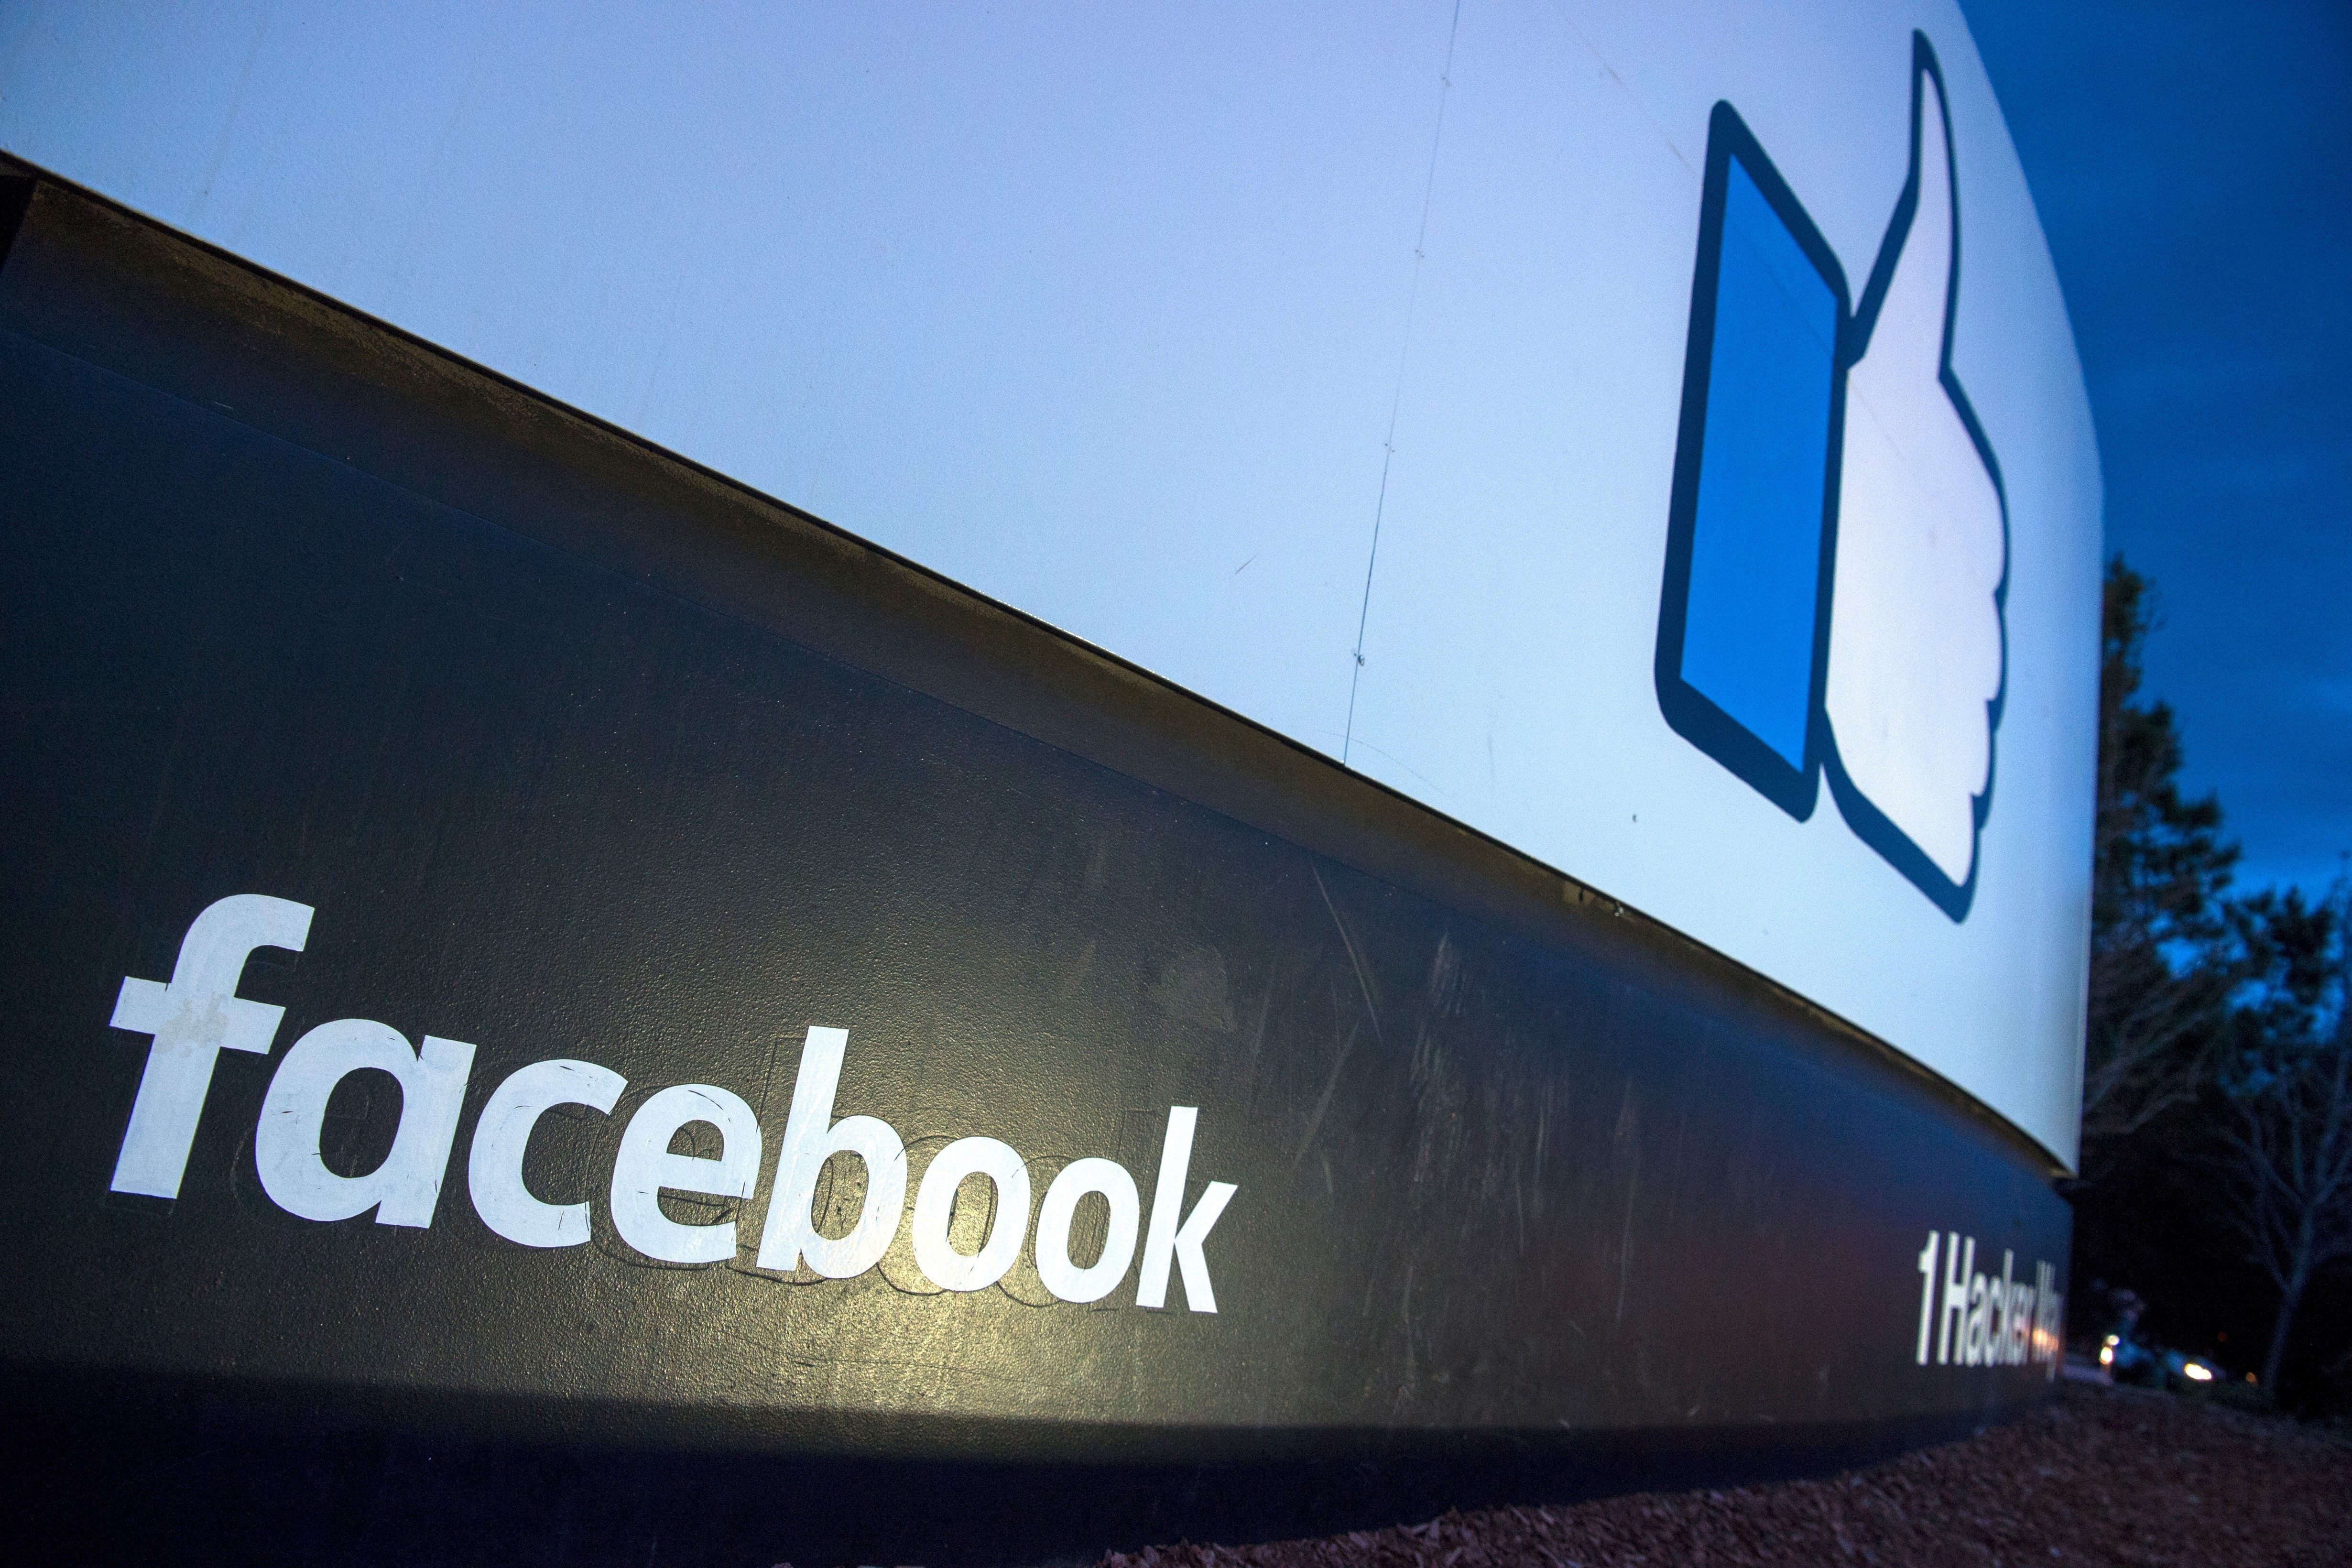 A lit sign is seen at the entrance to Facebook's corporate headquarters location in Menlo Park, California on March 21, 2018.  Facebook chief Mark Zuckerberg vowed on March 21 to 'step up' to fix problems at the social media giant, as it fights a snowballing scandal over the hijacking of personal data from millions of its users. / AFP PHOTO / JOSH EDELSON        (Photo credit should read JOSH EDELSON/AFP/Getty Images)